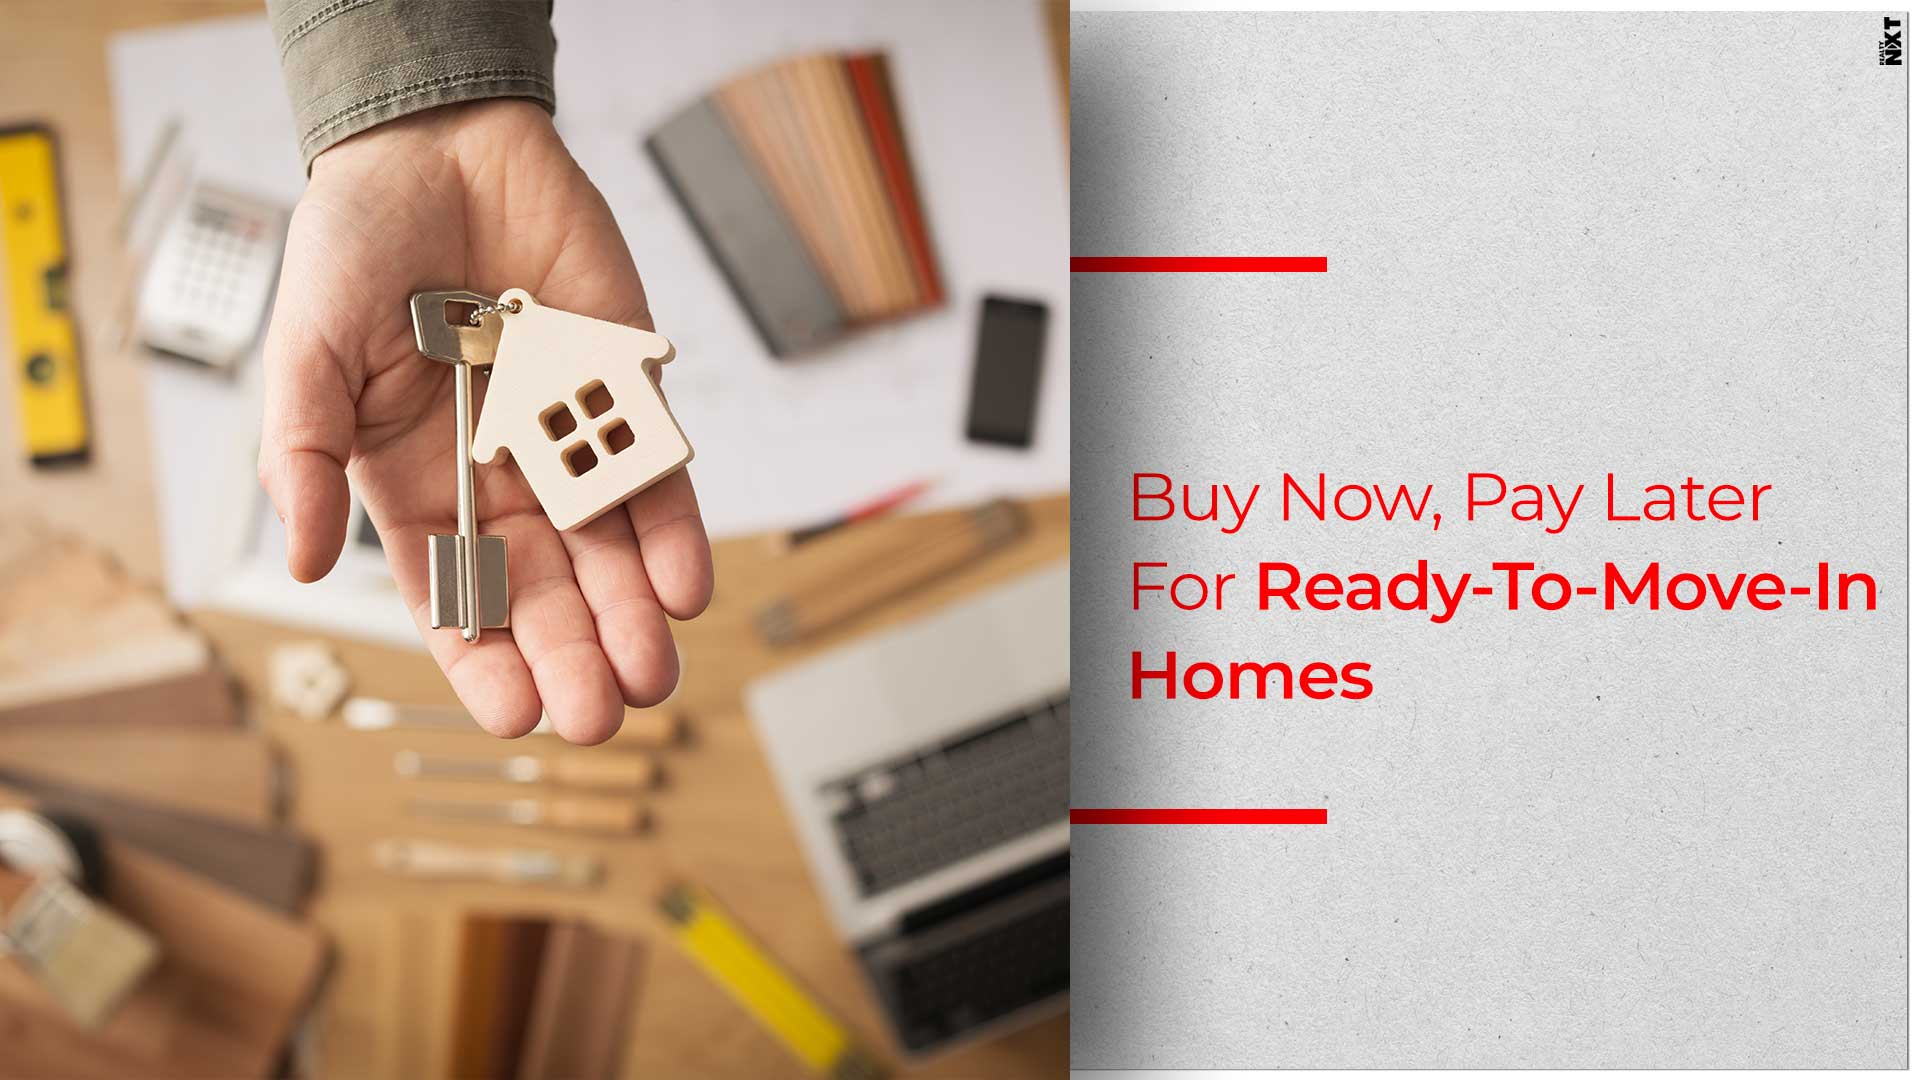 Buyers Of Ready-To-Move-In Homes Too Can Pay Later